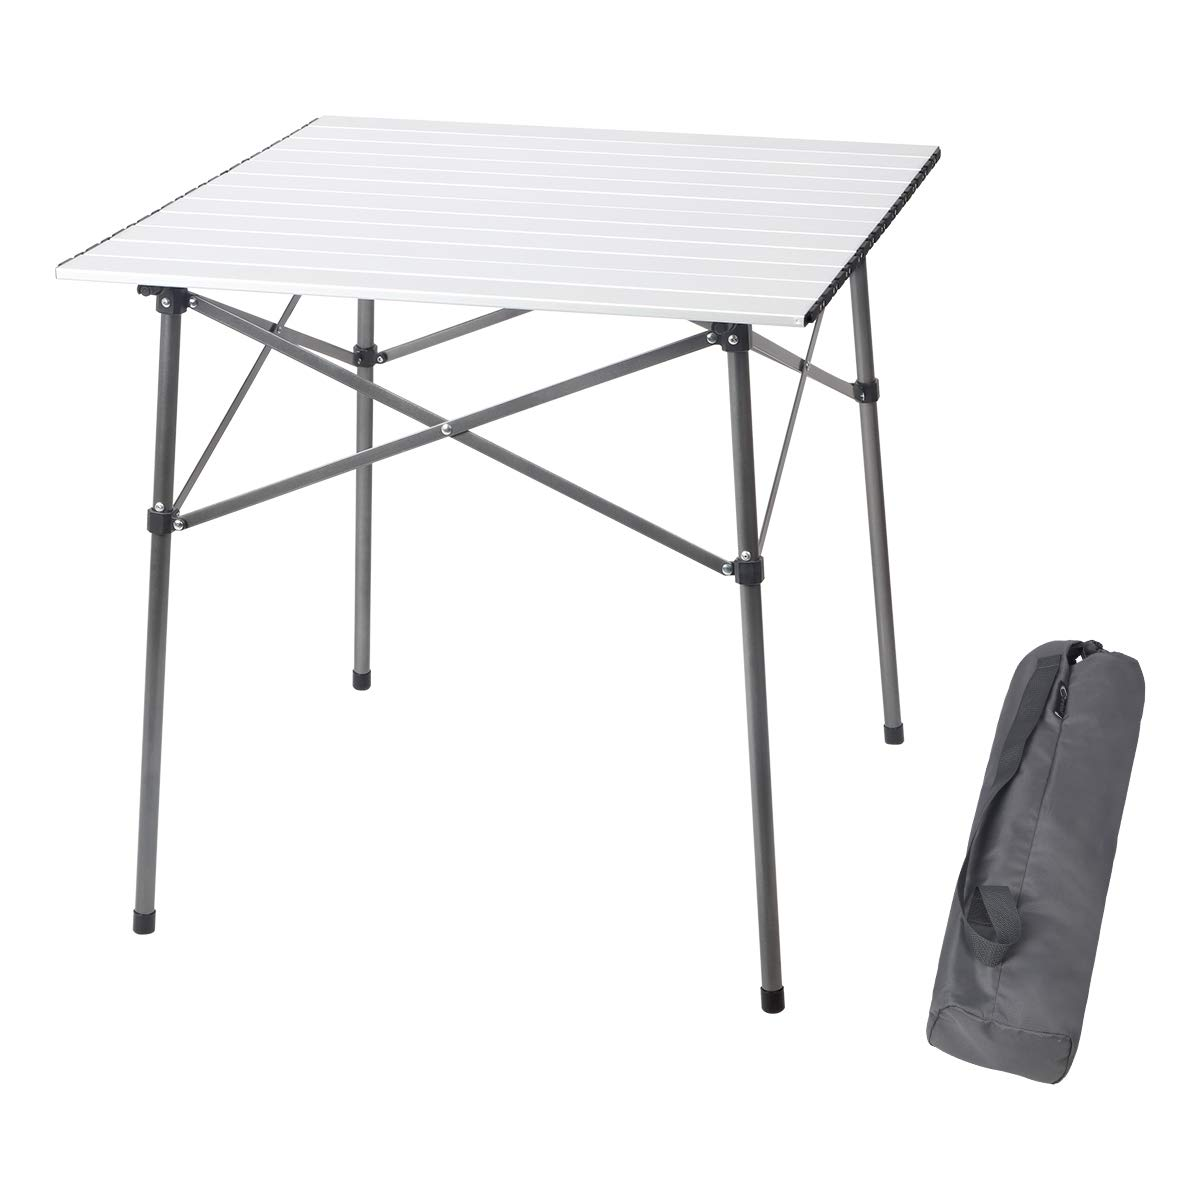 Incroyable Amazon.com : PORTAL Lightweight Aluminum Folding Square Table Roll Up Top 4  People Compact Table With Carry Bag For Camping, Picnic, Backyards, ...